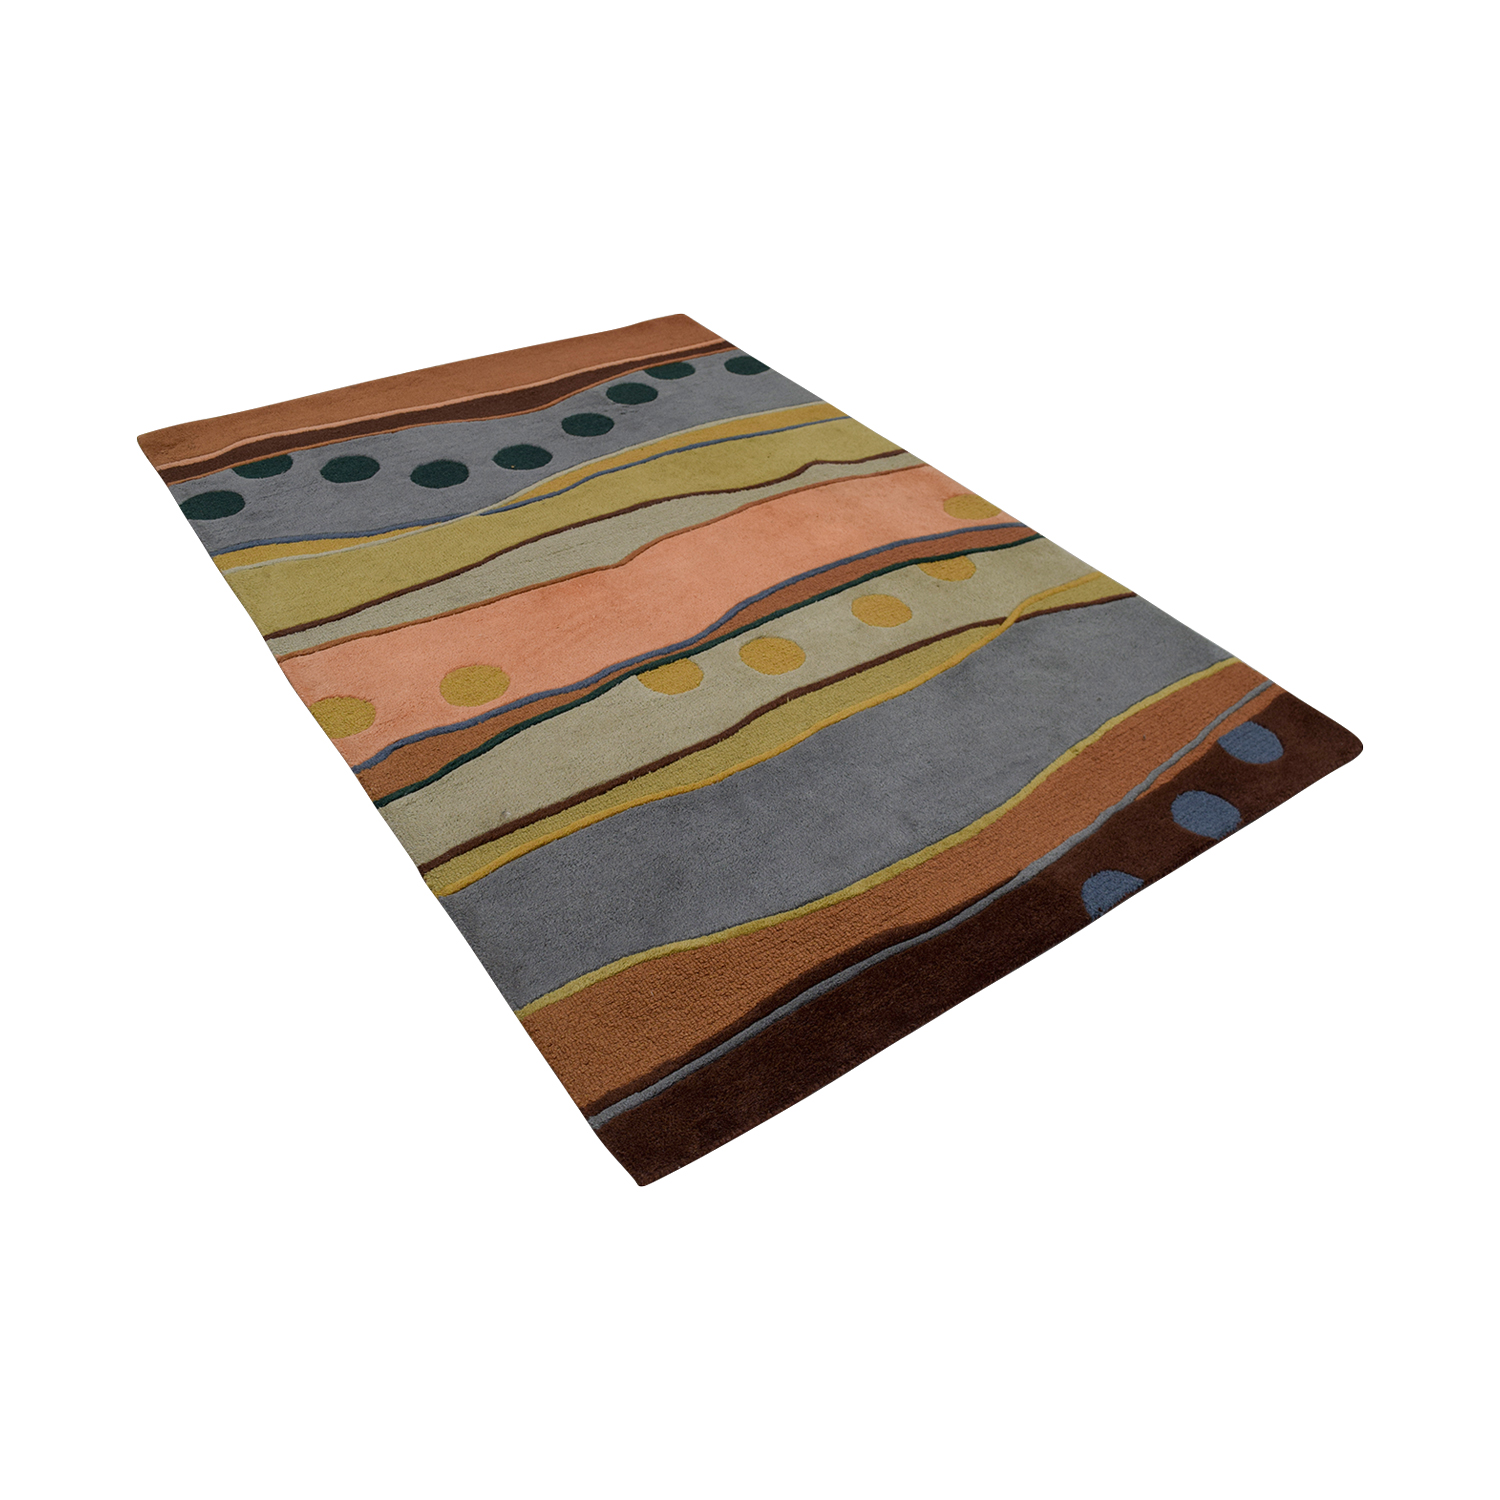 Multi-Colored Rug used